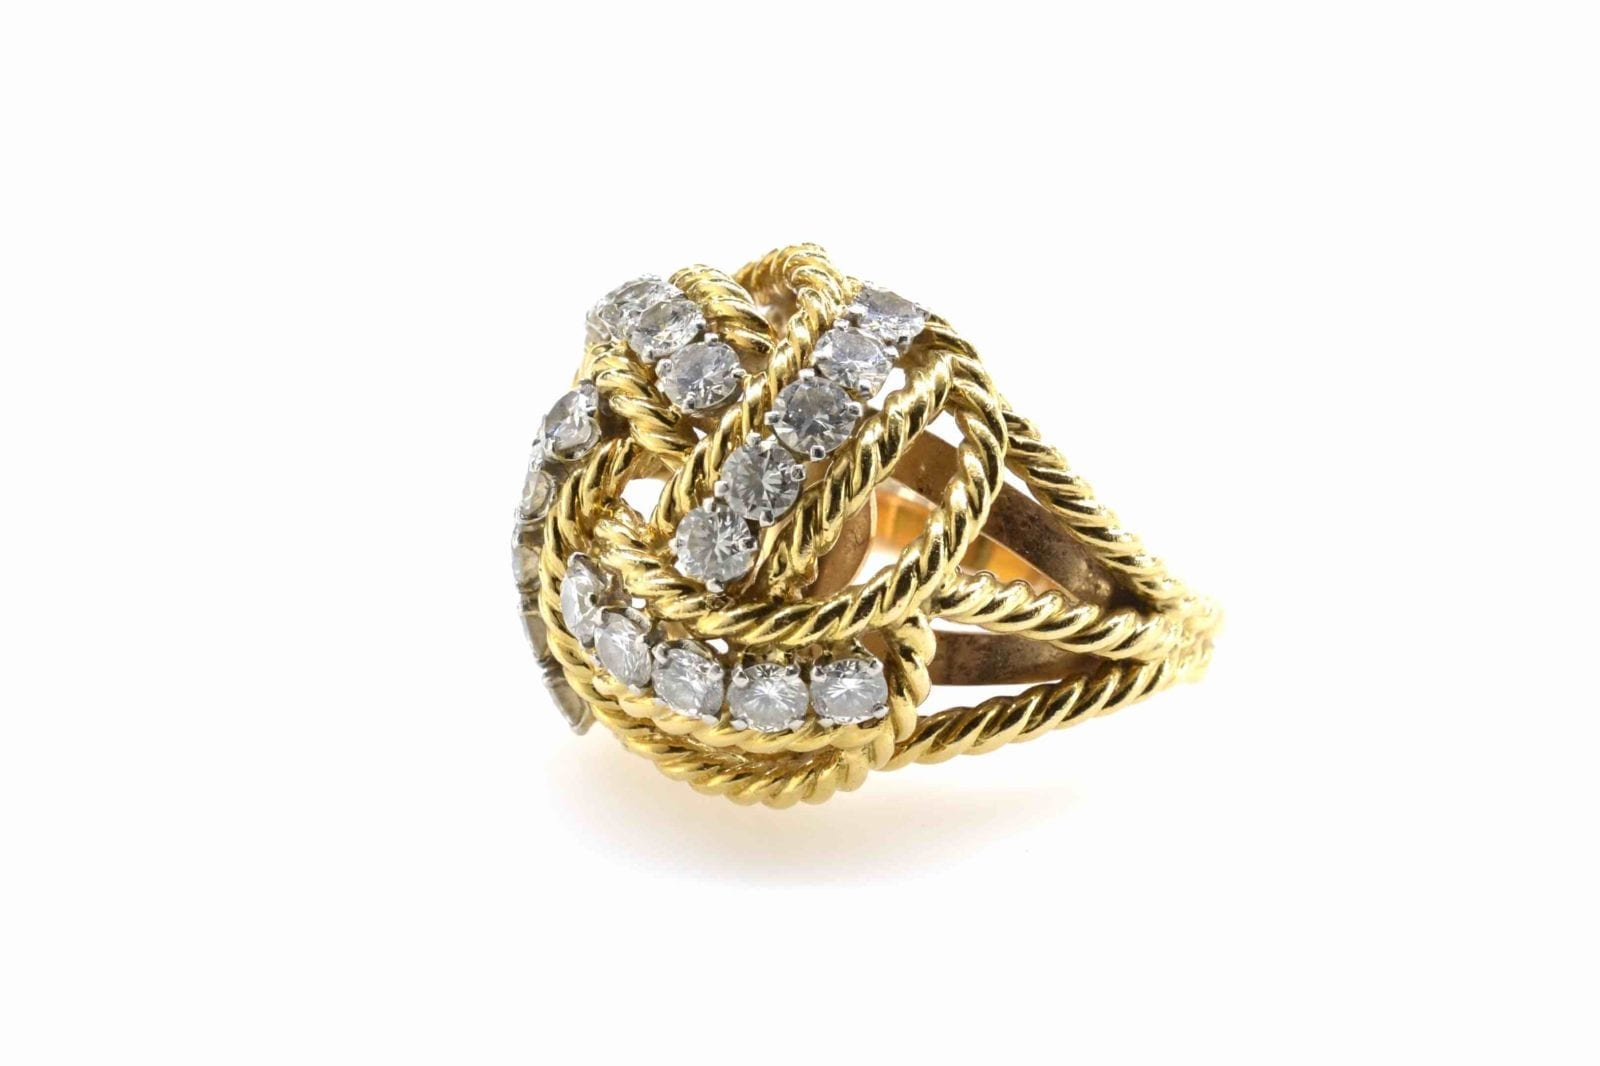 Bague Boucheron diamants 1950